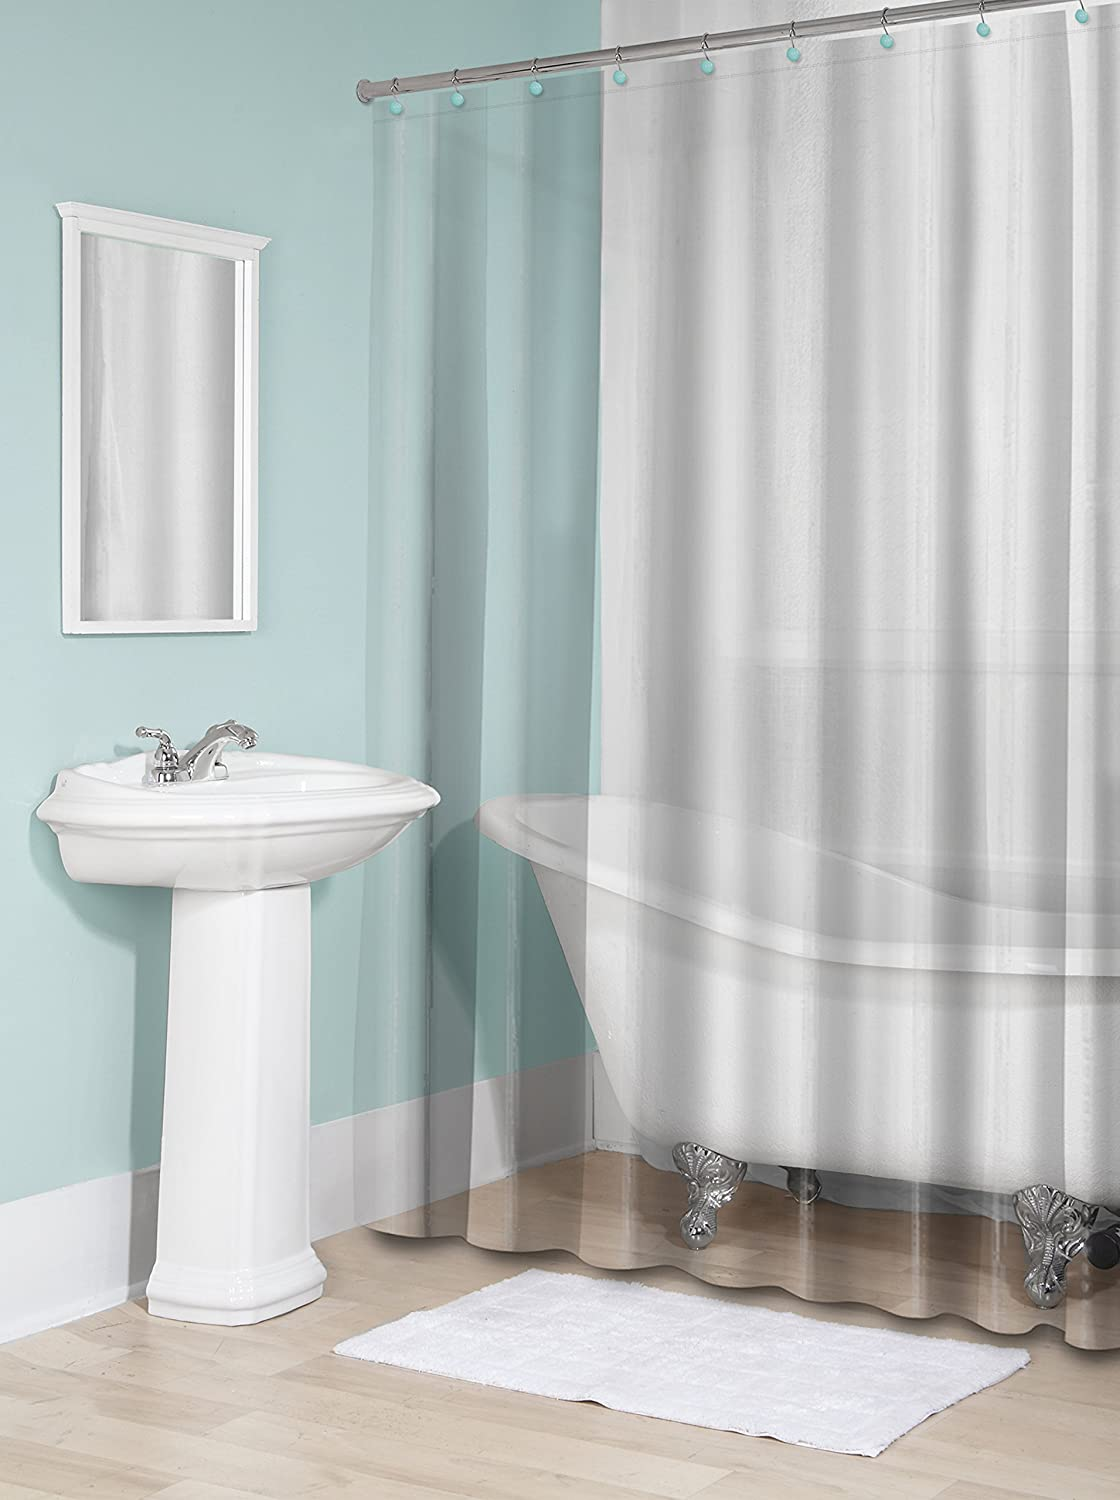 Splash Home 100 PEVA Shower Curtain Liner 6 Gauge No Odor Non Toxic ChemicalsUltra Soft Use As Standalone Or 70 X 72 Inch Clearwith